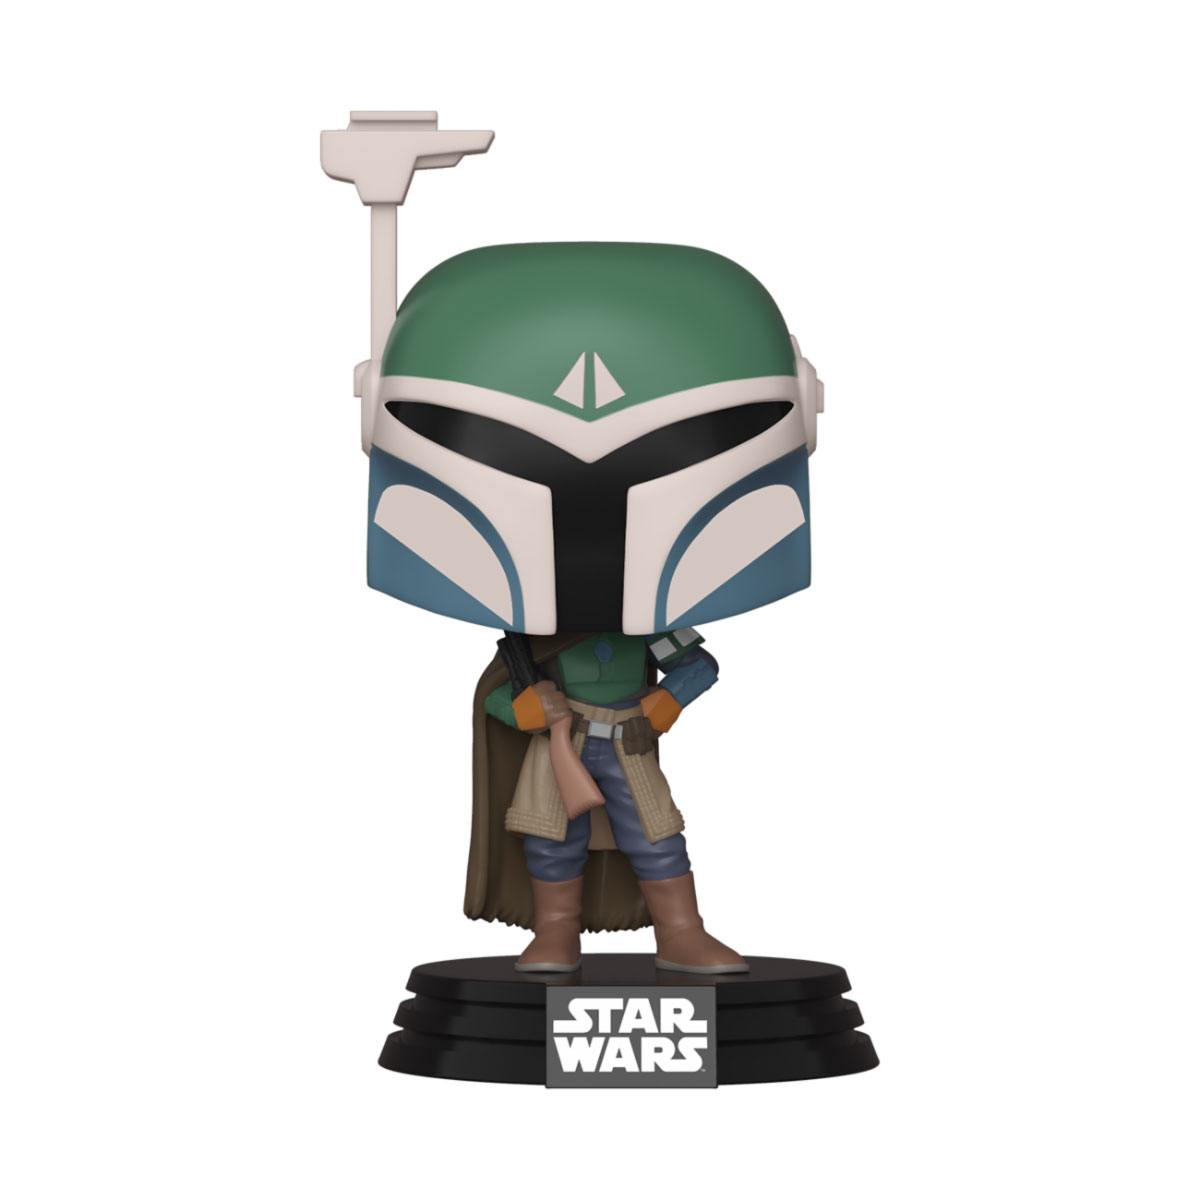 Star Wars The Mandalorian POP! TV Vinyl Figure Covert Mandalorian 9 cm